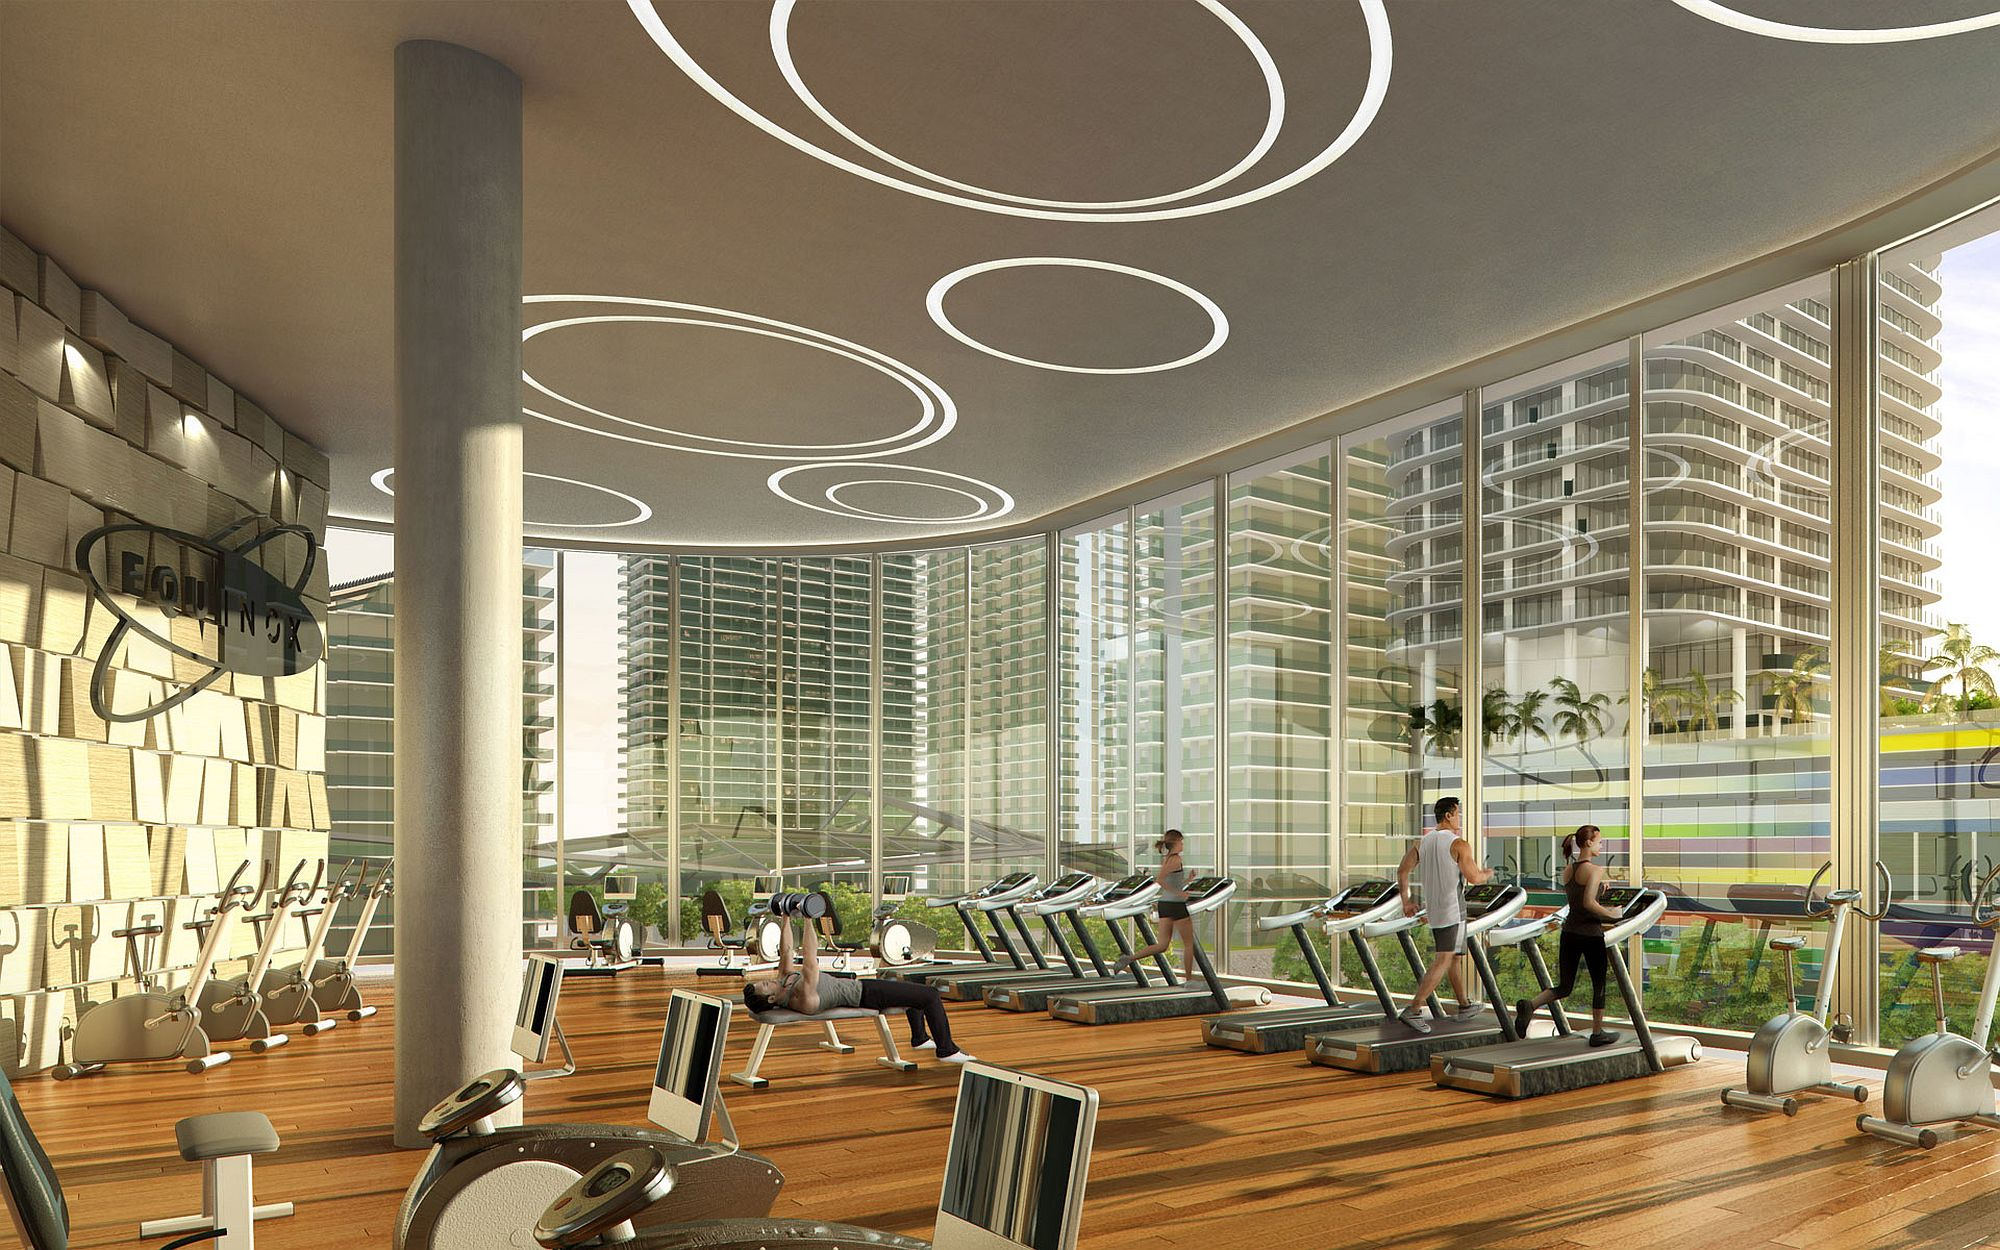 Equinox offers high-performance fitness programs at BH02